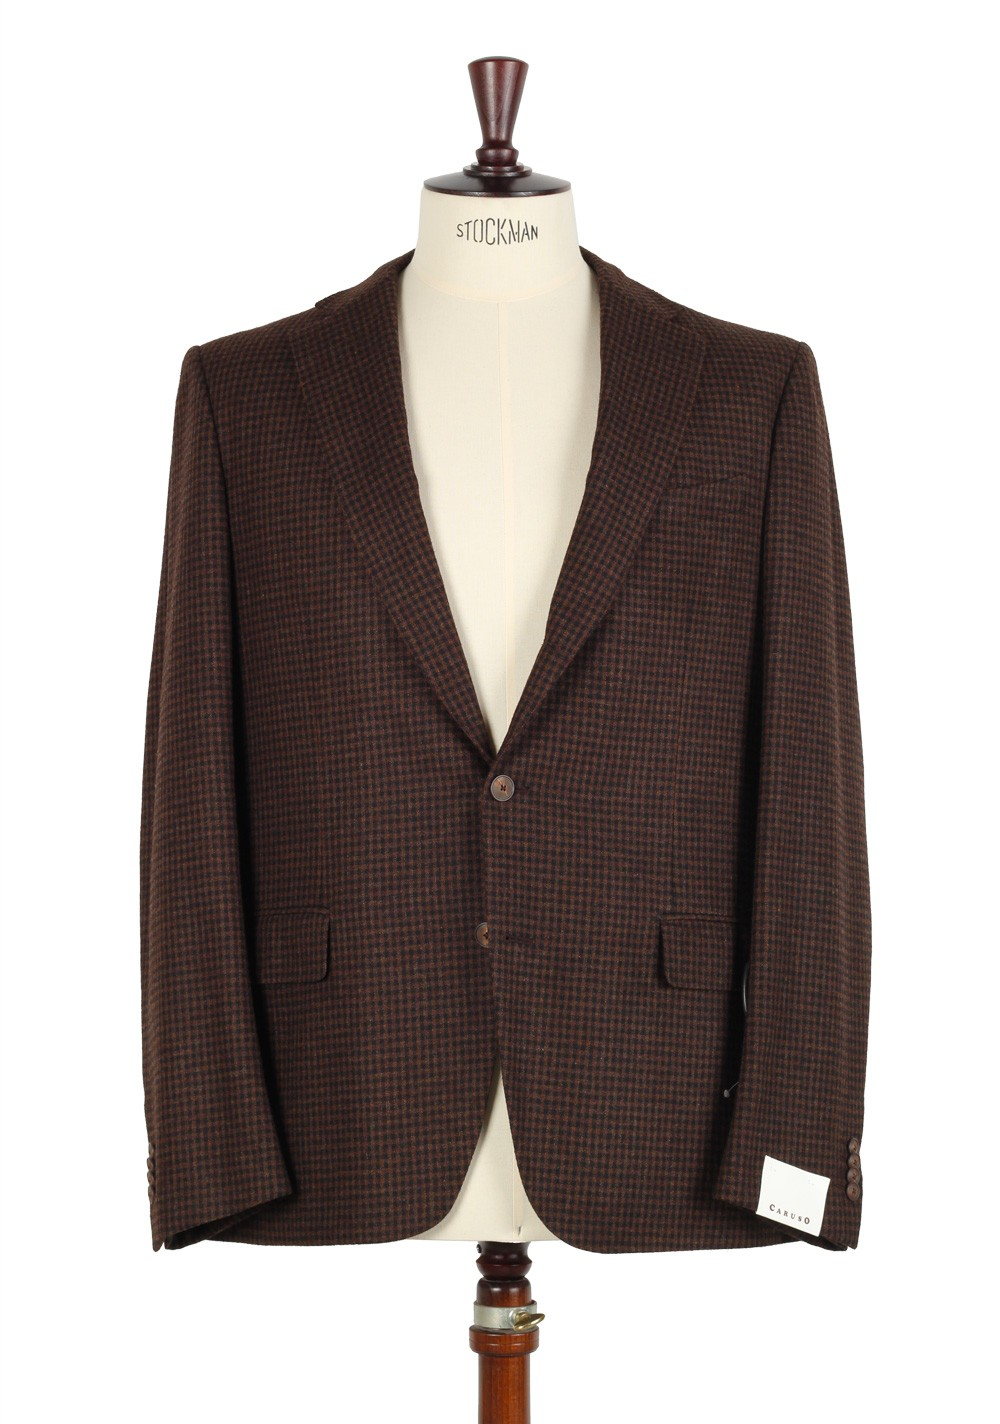 Choose from sport coats in solid neutrals, corduroy, herringbone print and more, then pair with one of our fine men's dress shirts. Finish the look with one of our .